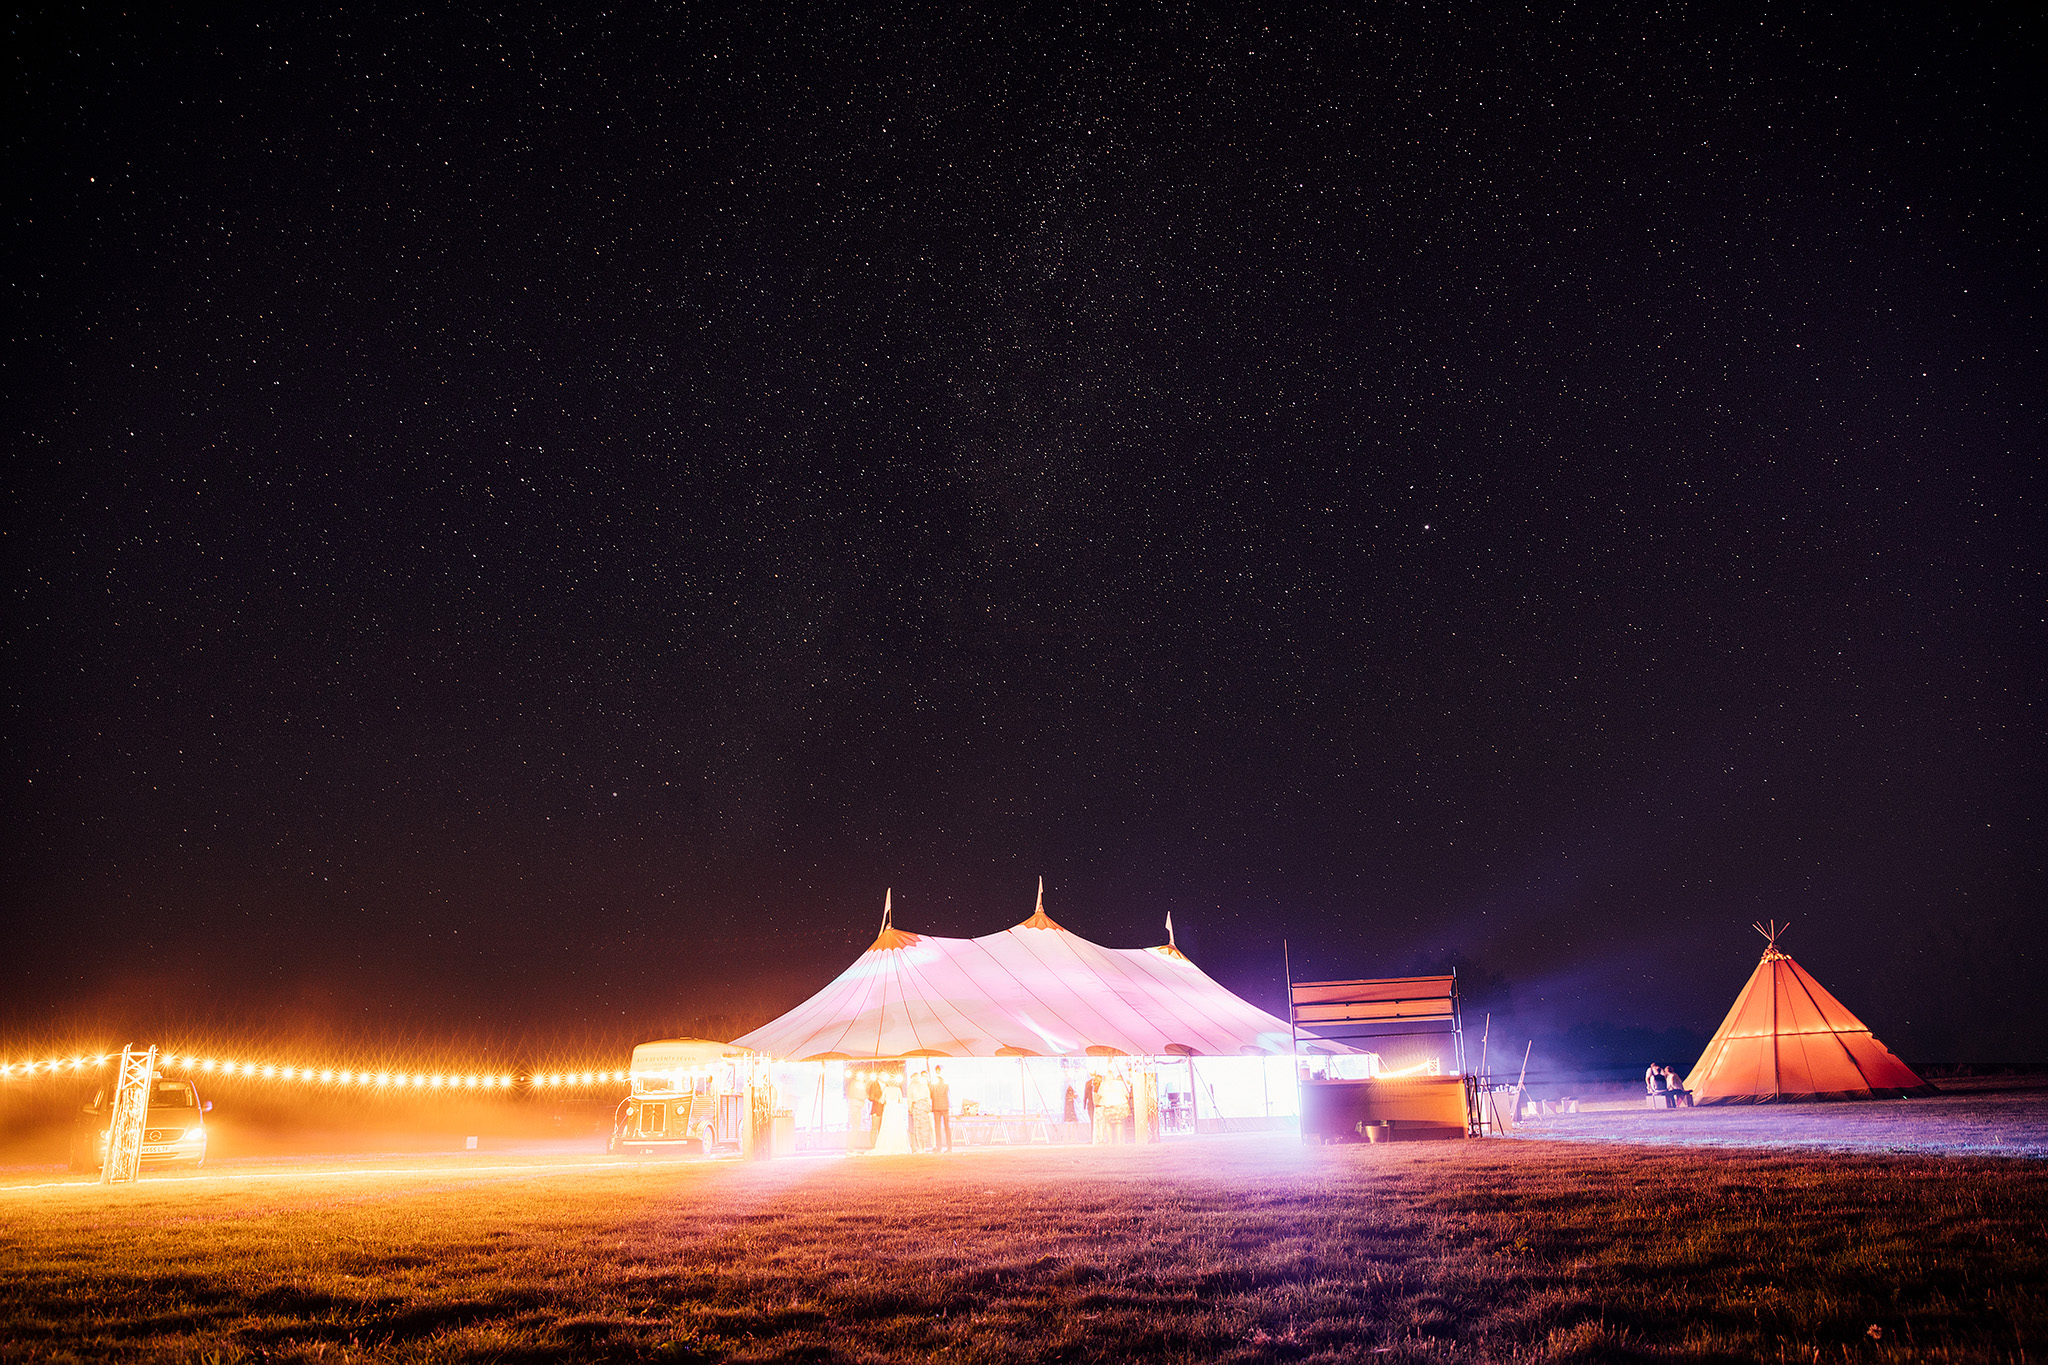 PapaKåta Sperry Wedding in Oxfordshire by Harry Michael Photography- Sperry Tent exterior at night